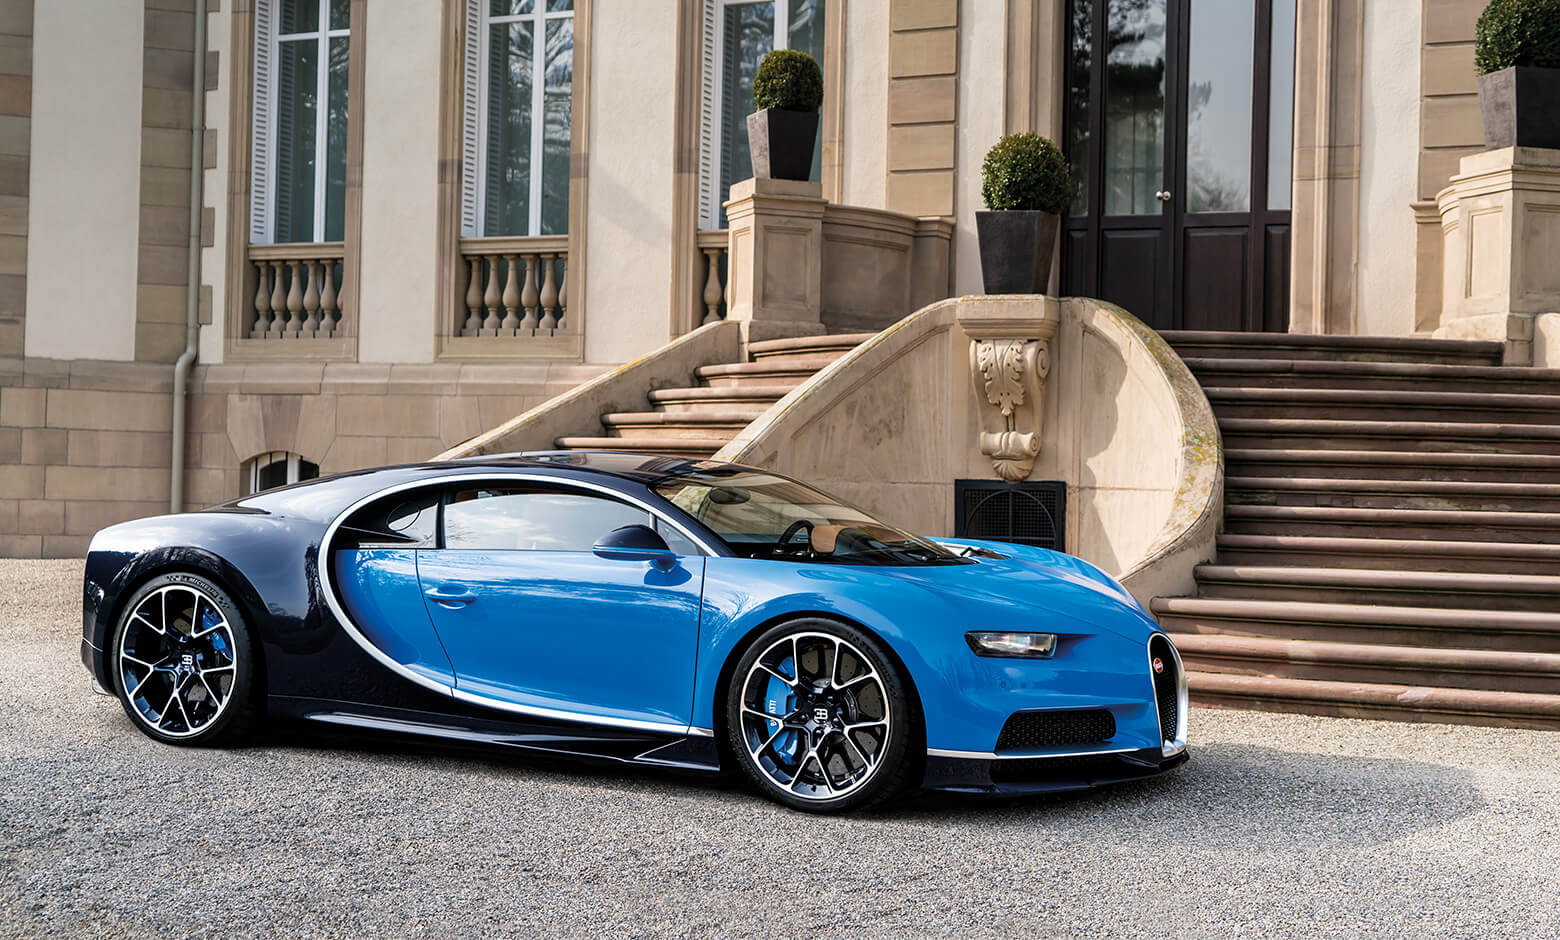 Top 6 sports cars released in 2017 12